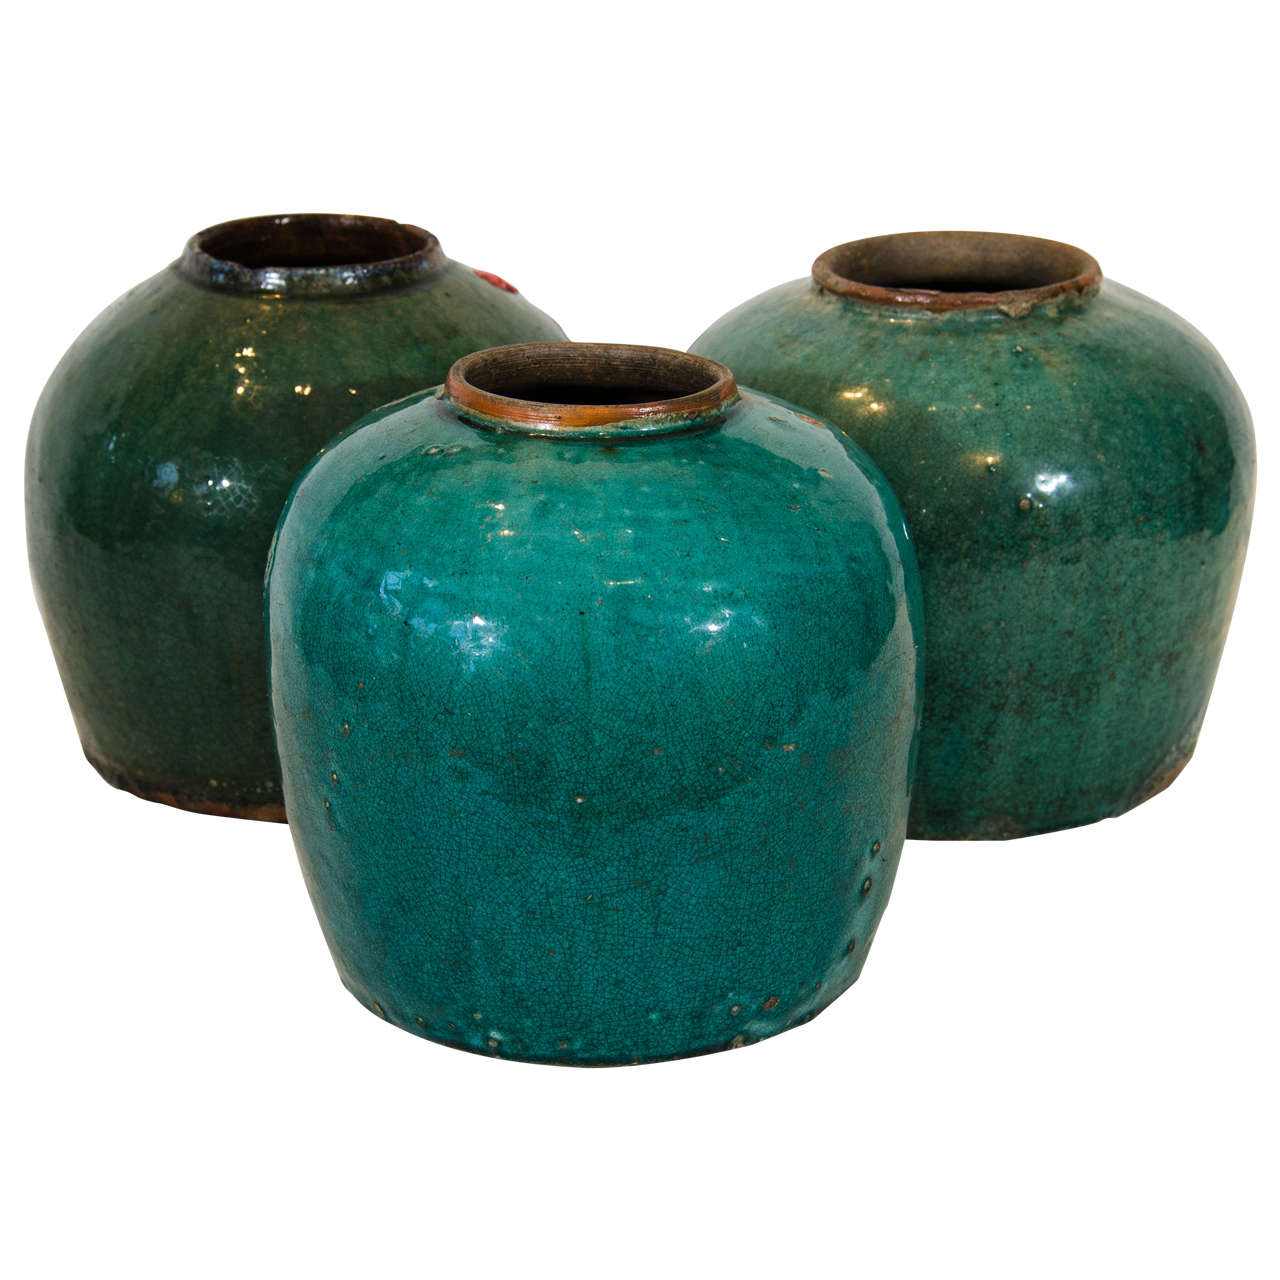 Antique Chinese Ginger Jars For